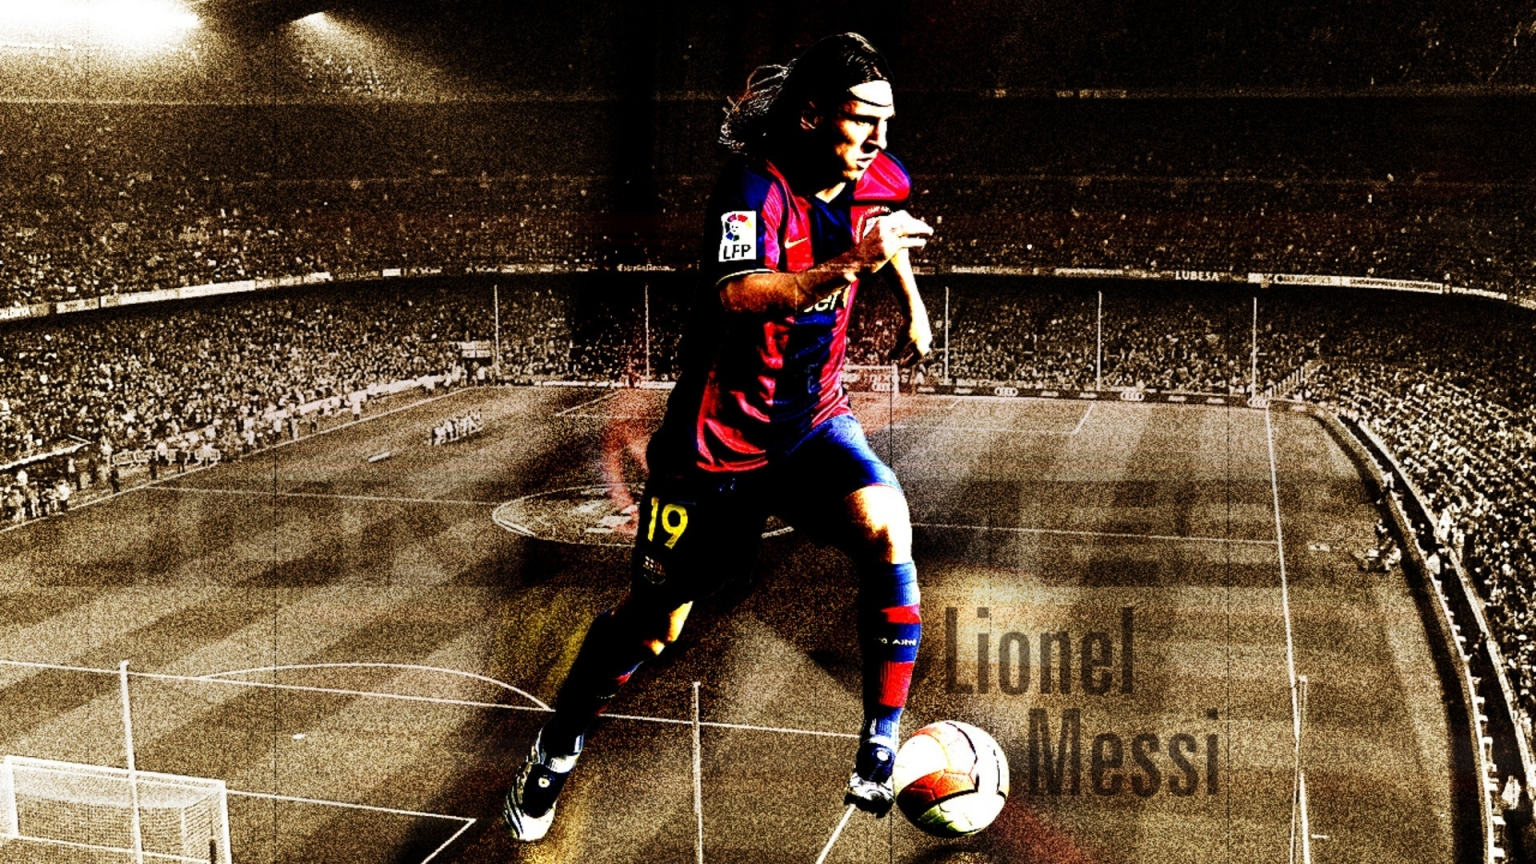 Lionel Messi Barcelona Fan Art for 1536 x 864 HDTV resolution